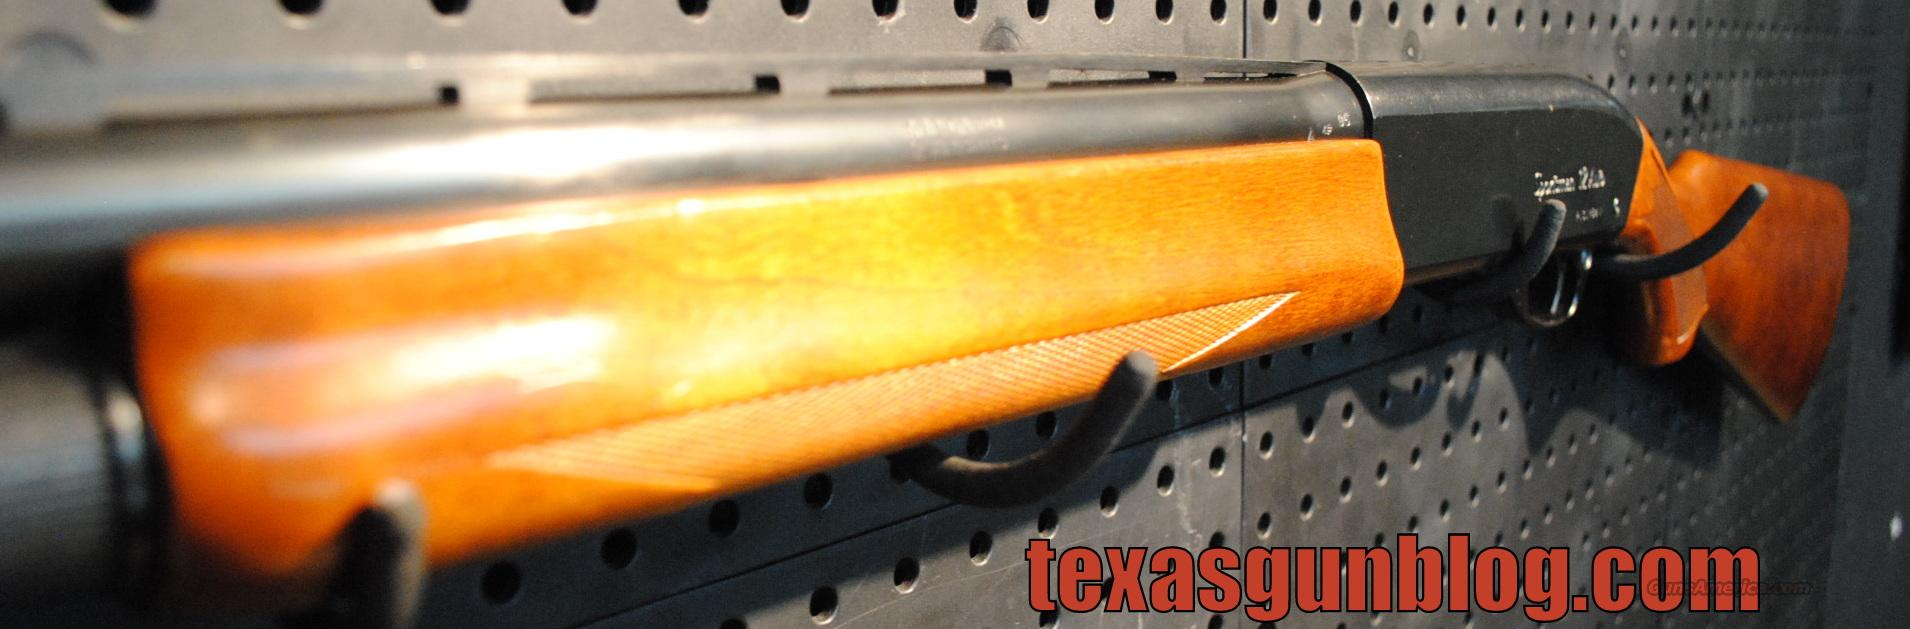 Remington Sportsman 12 Semi-Auto Shotgun  Guns > Shotguns > Remington Shotguns  > Autoloaders > Hunting